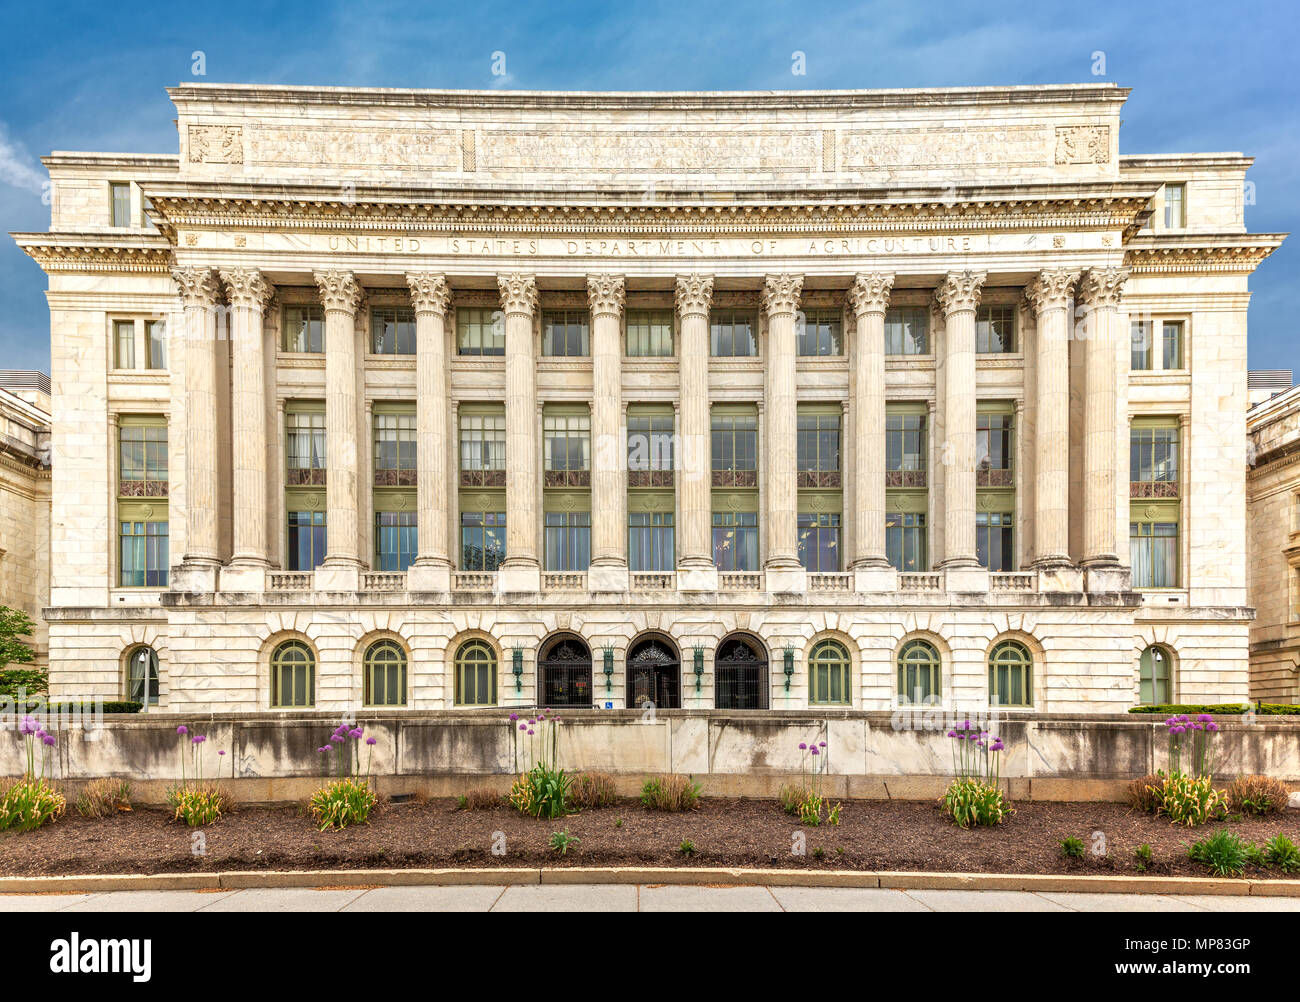 The US Department of Agriculture building (aka the Jamie L. Whitten) in Washington DC. - Stock Image